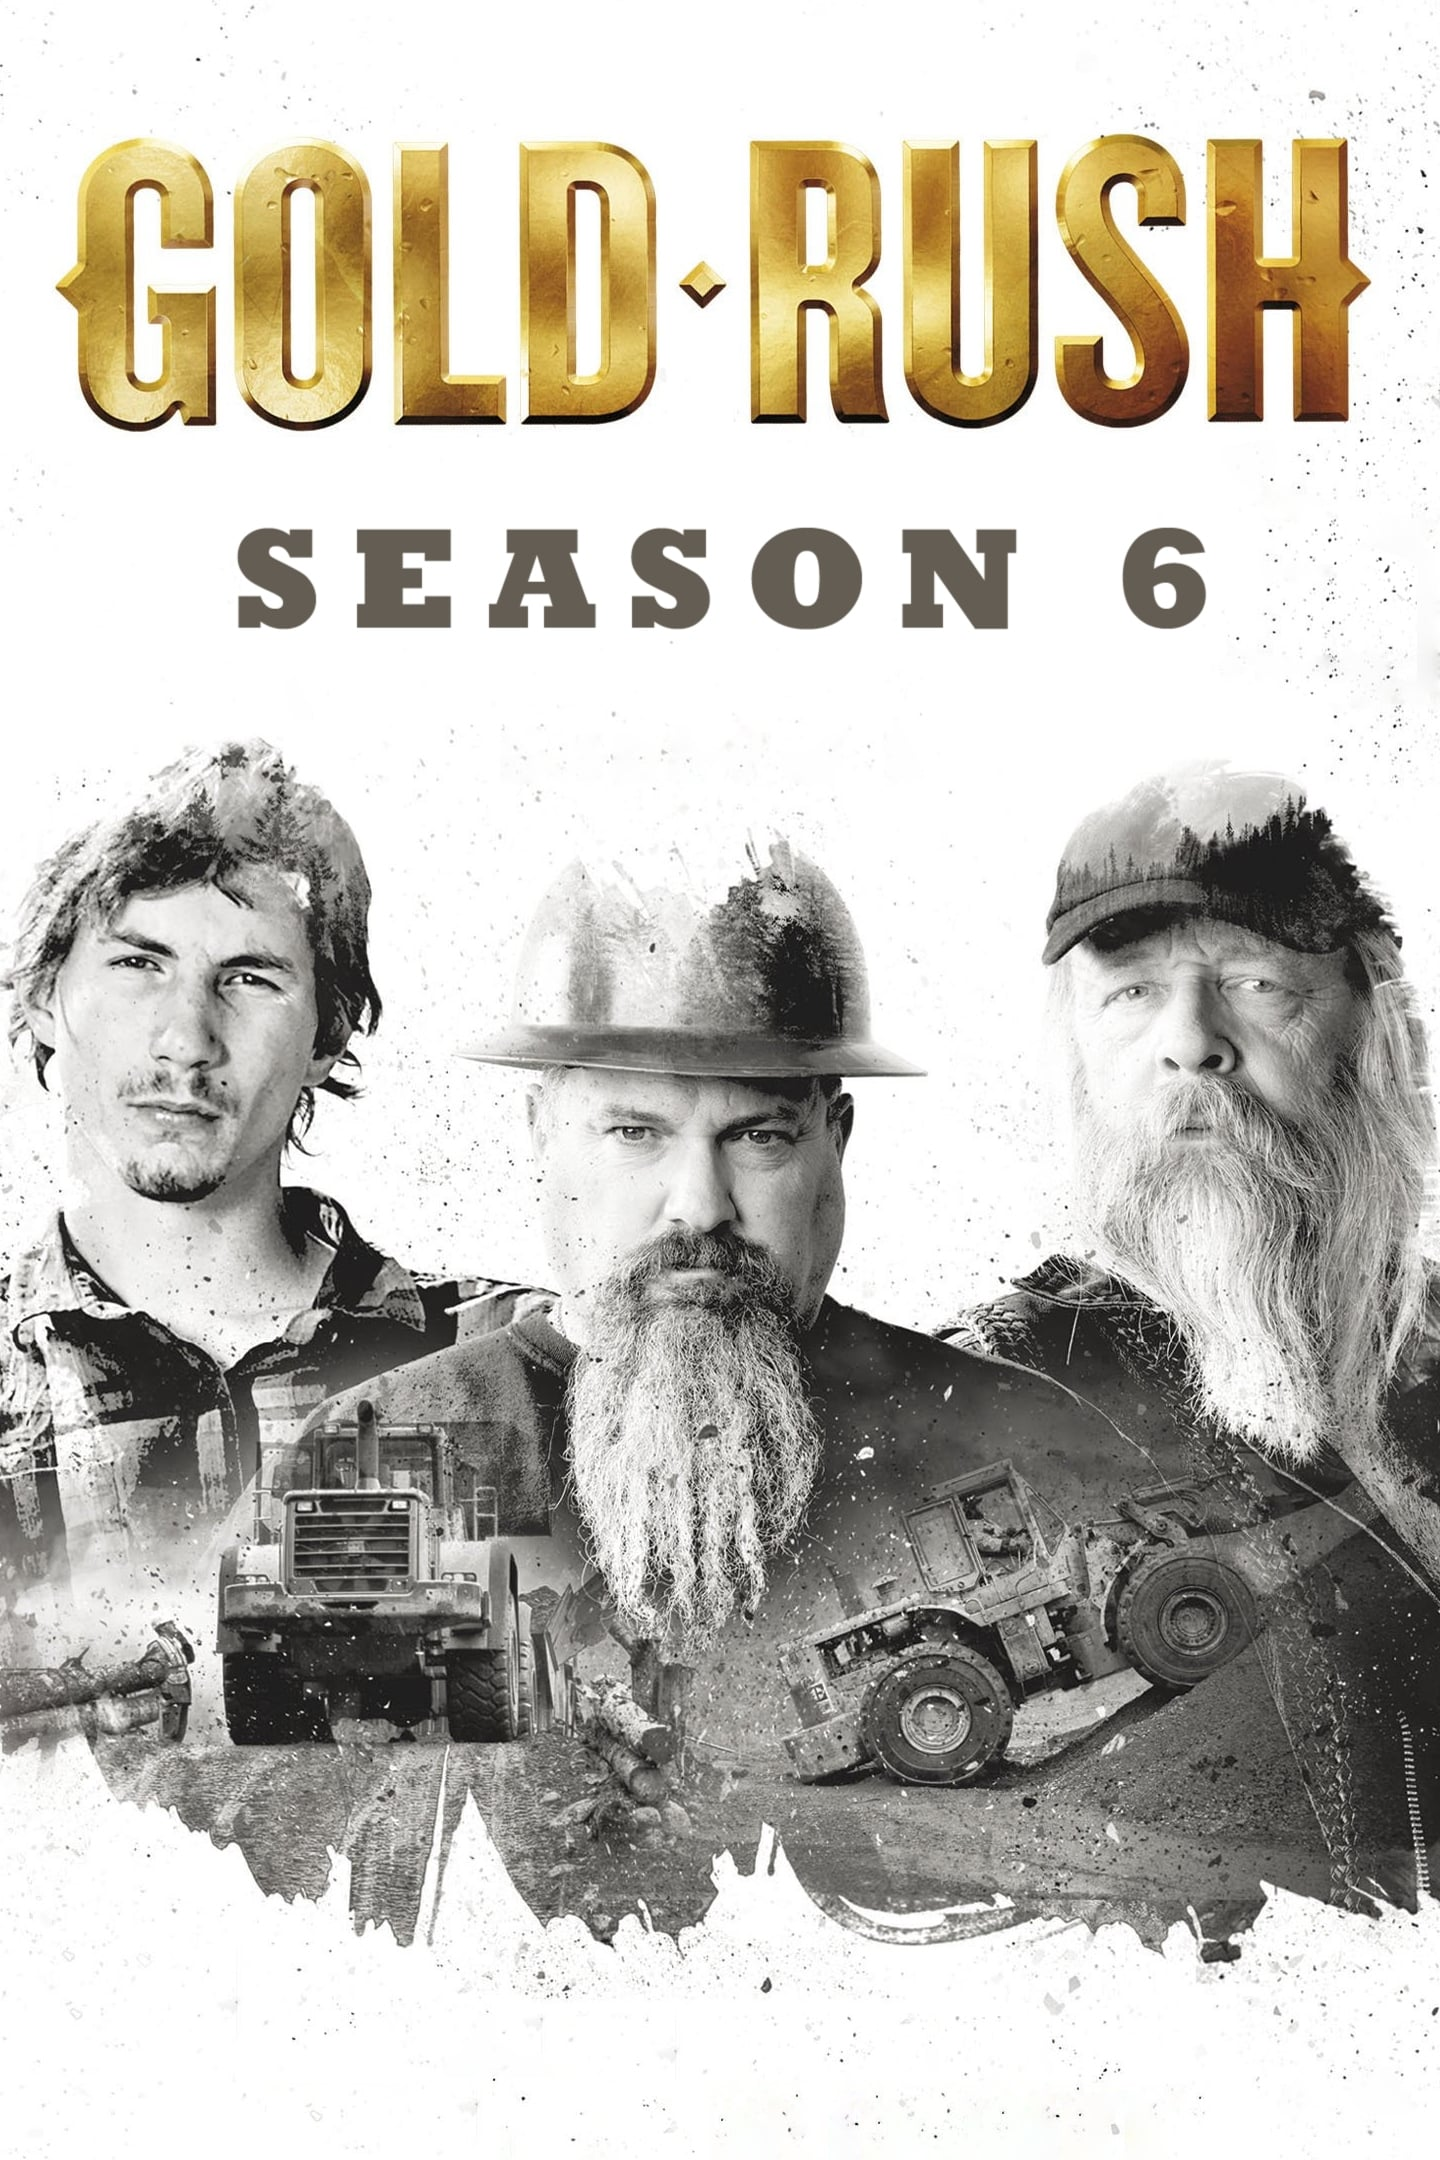 Gold Rush Season 6